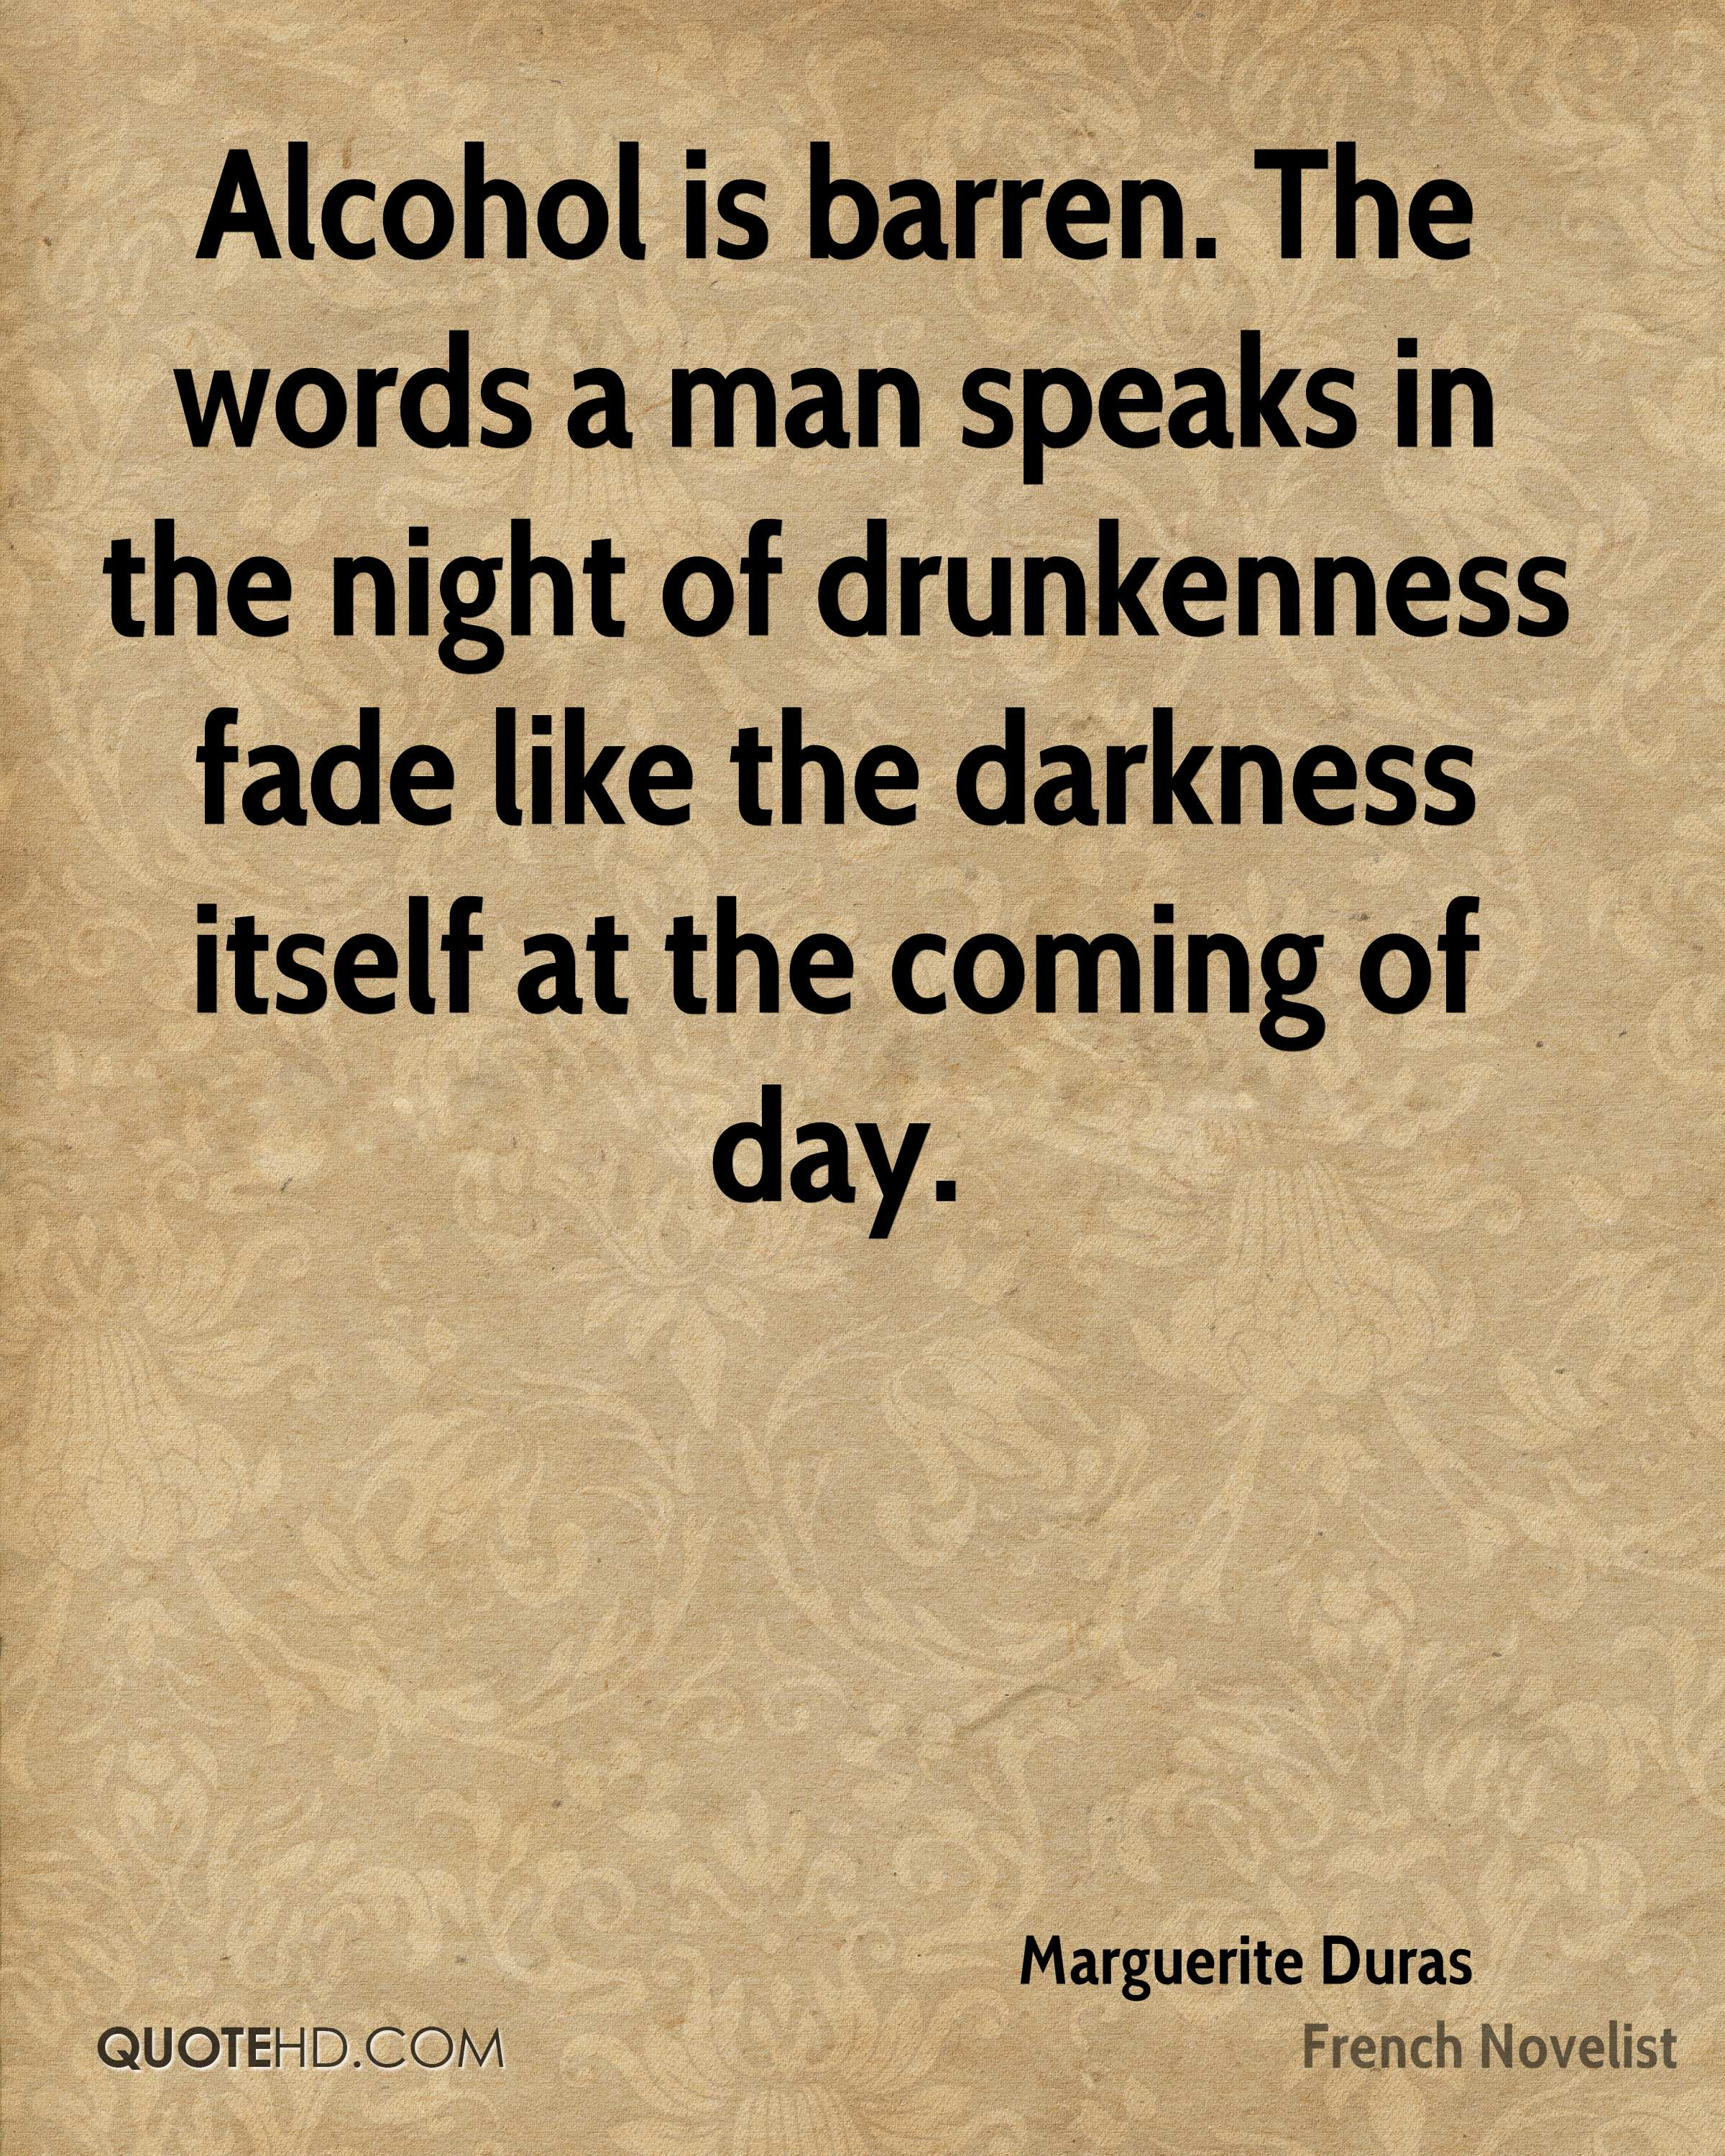 Alcohol is barren. The words a man speaks in the night of drunkenness fade like the darkness itself at the coming of day.